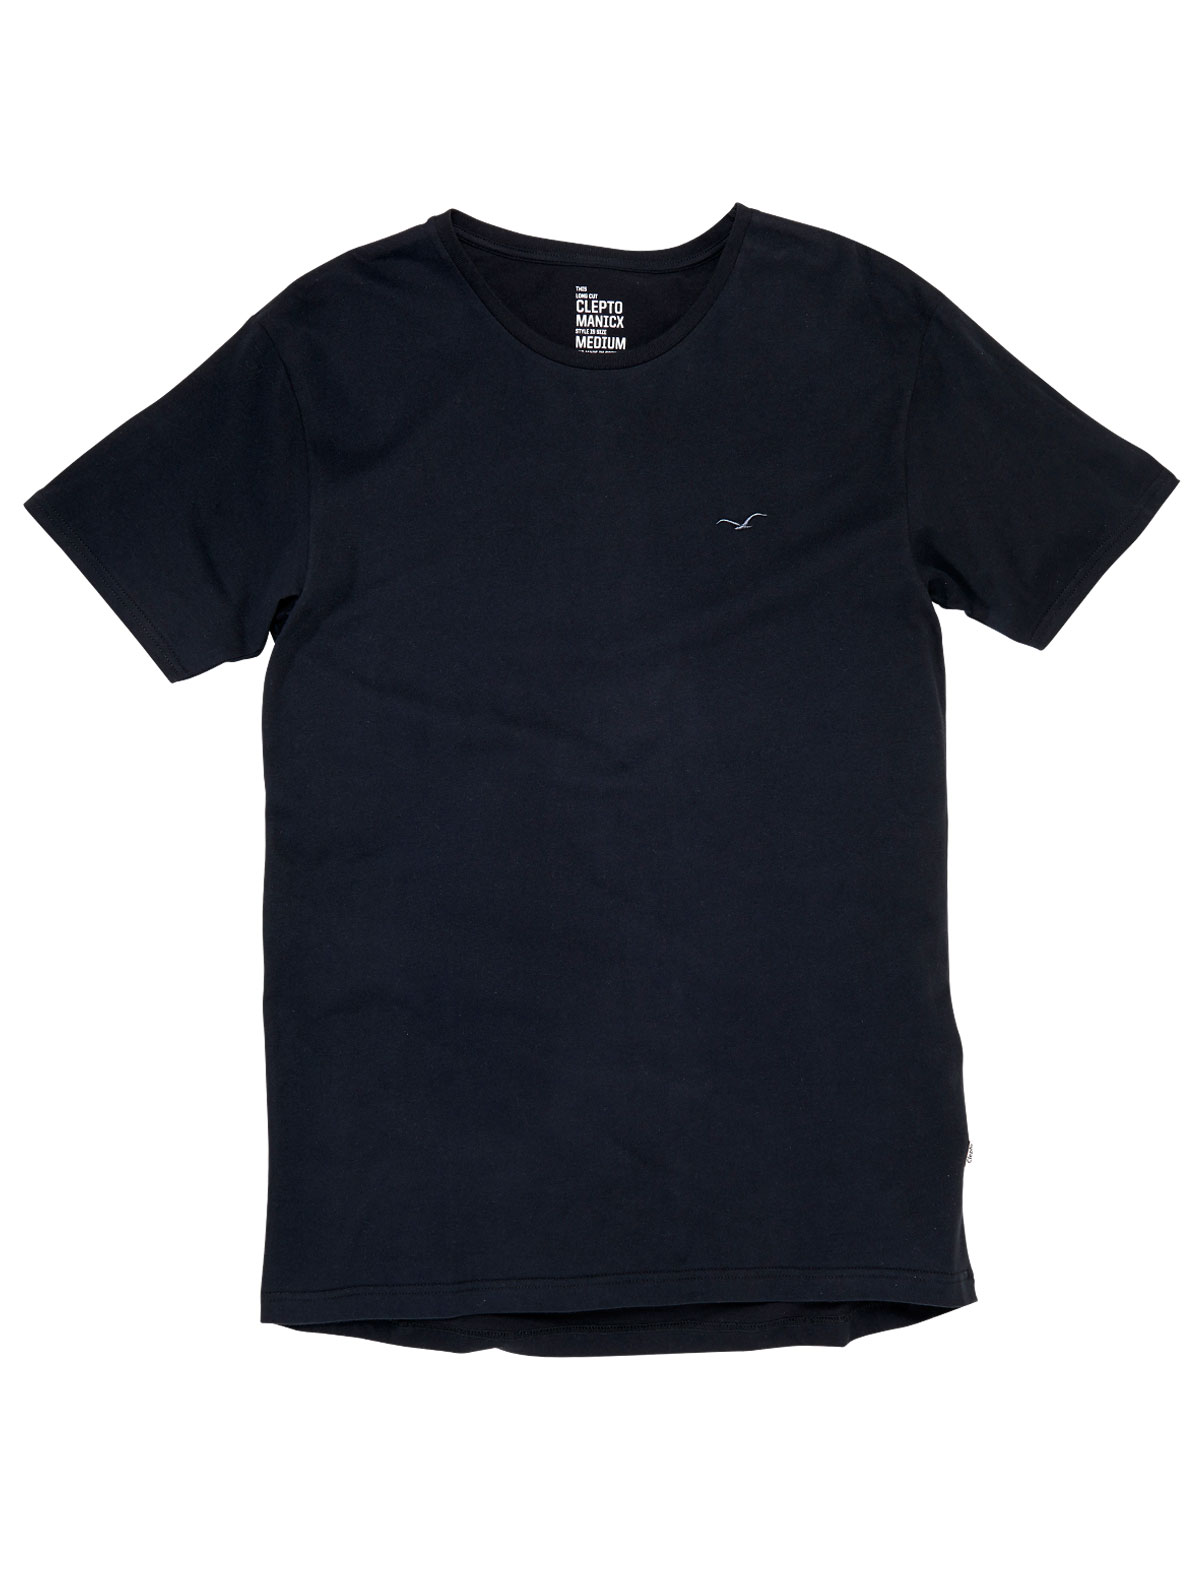 Ligull Long 2 Tee blk